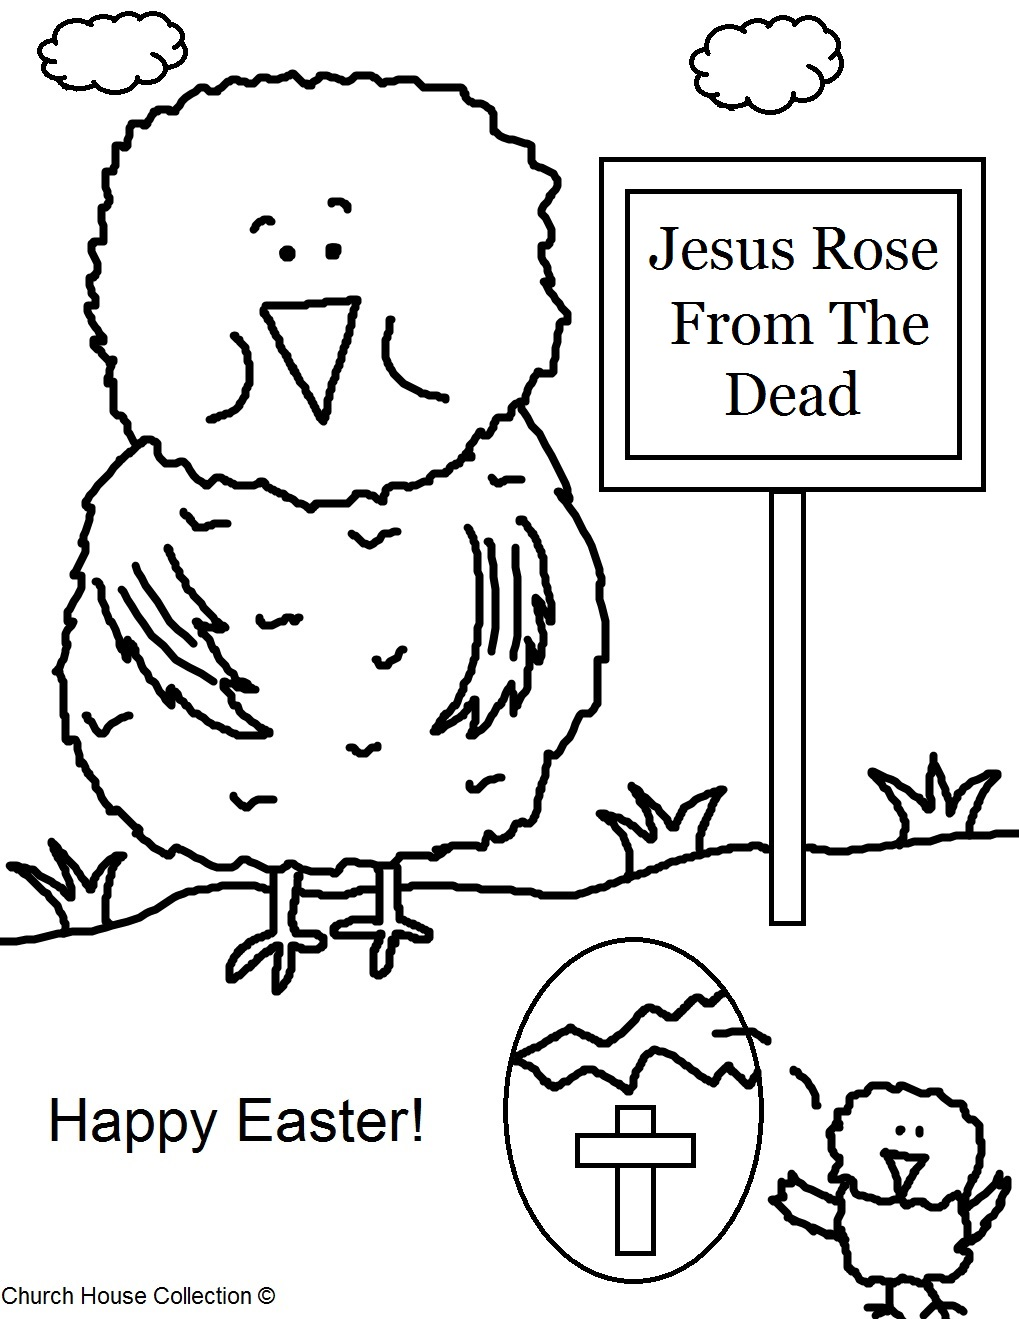 Happy Easter chick coloring page Royalty Free Vector Image | 1319x1019